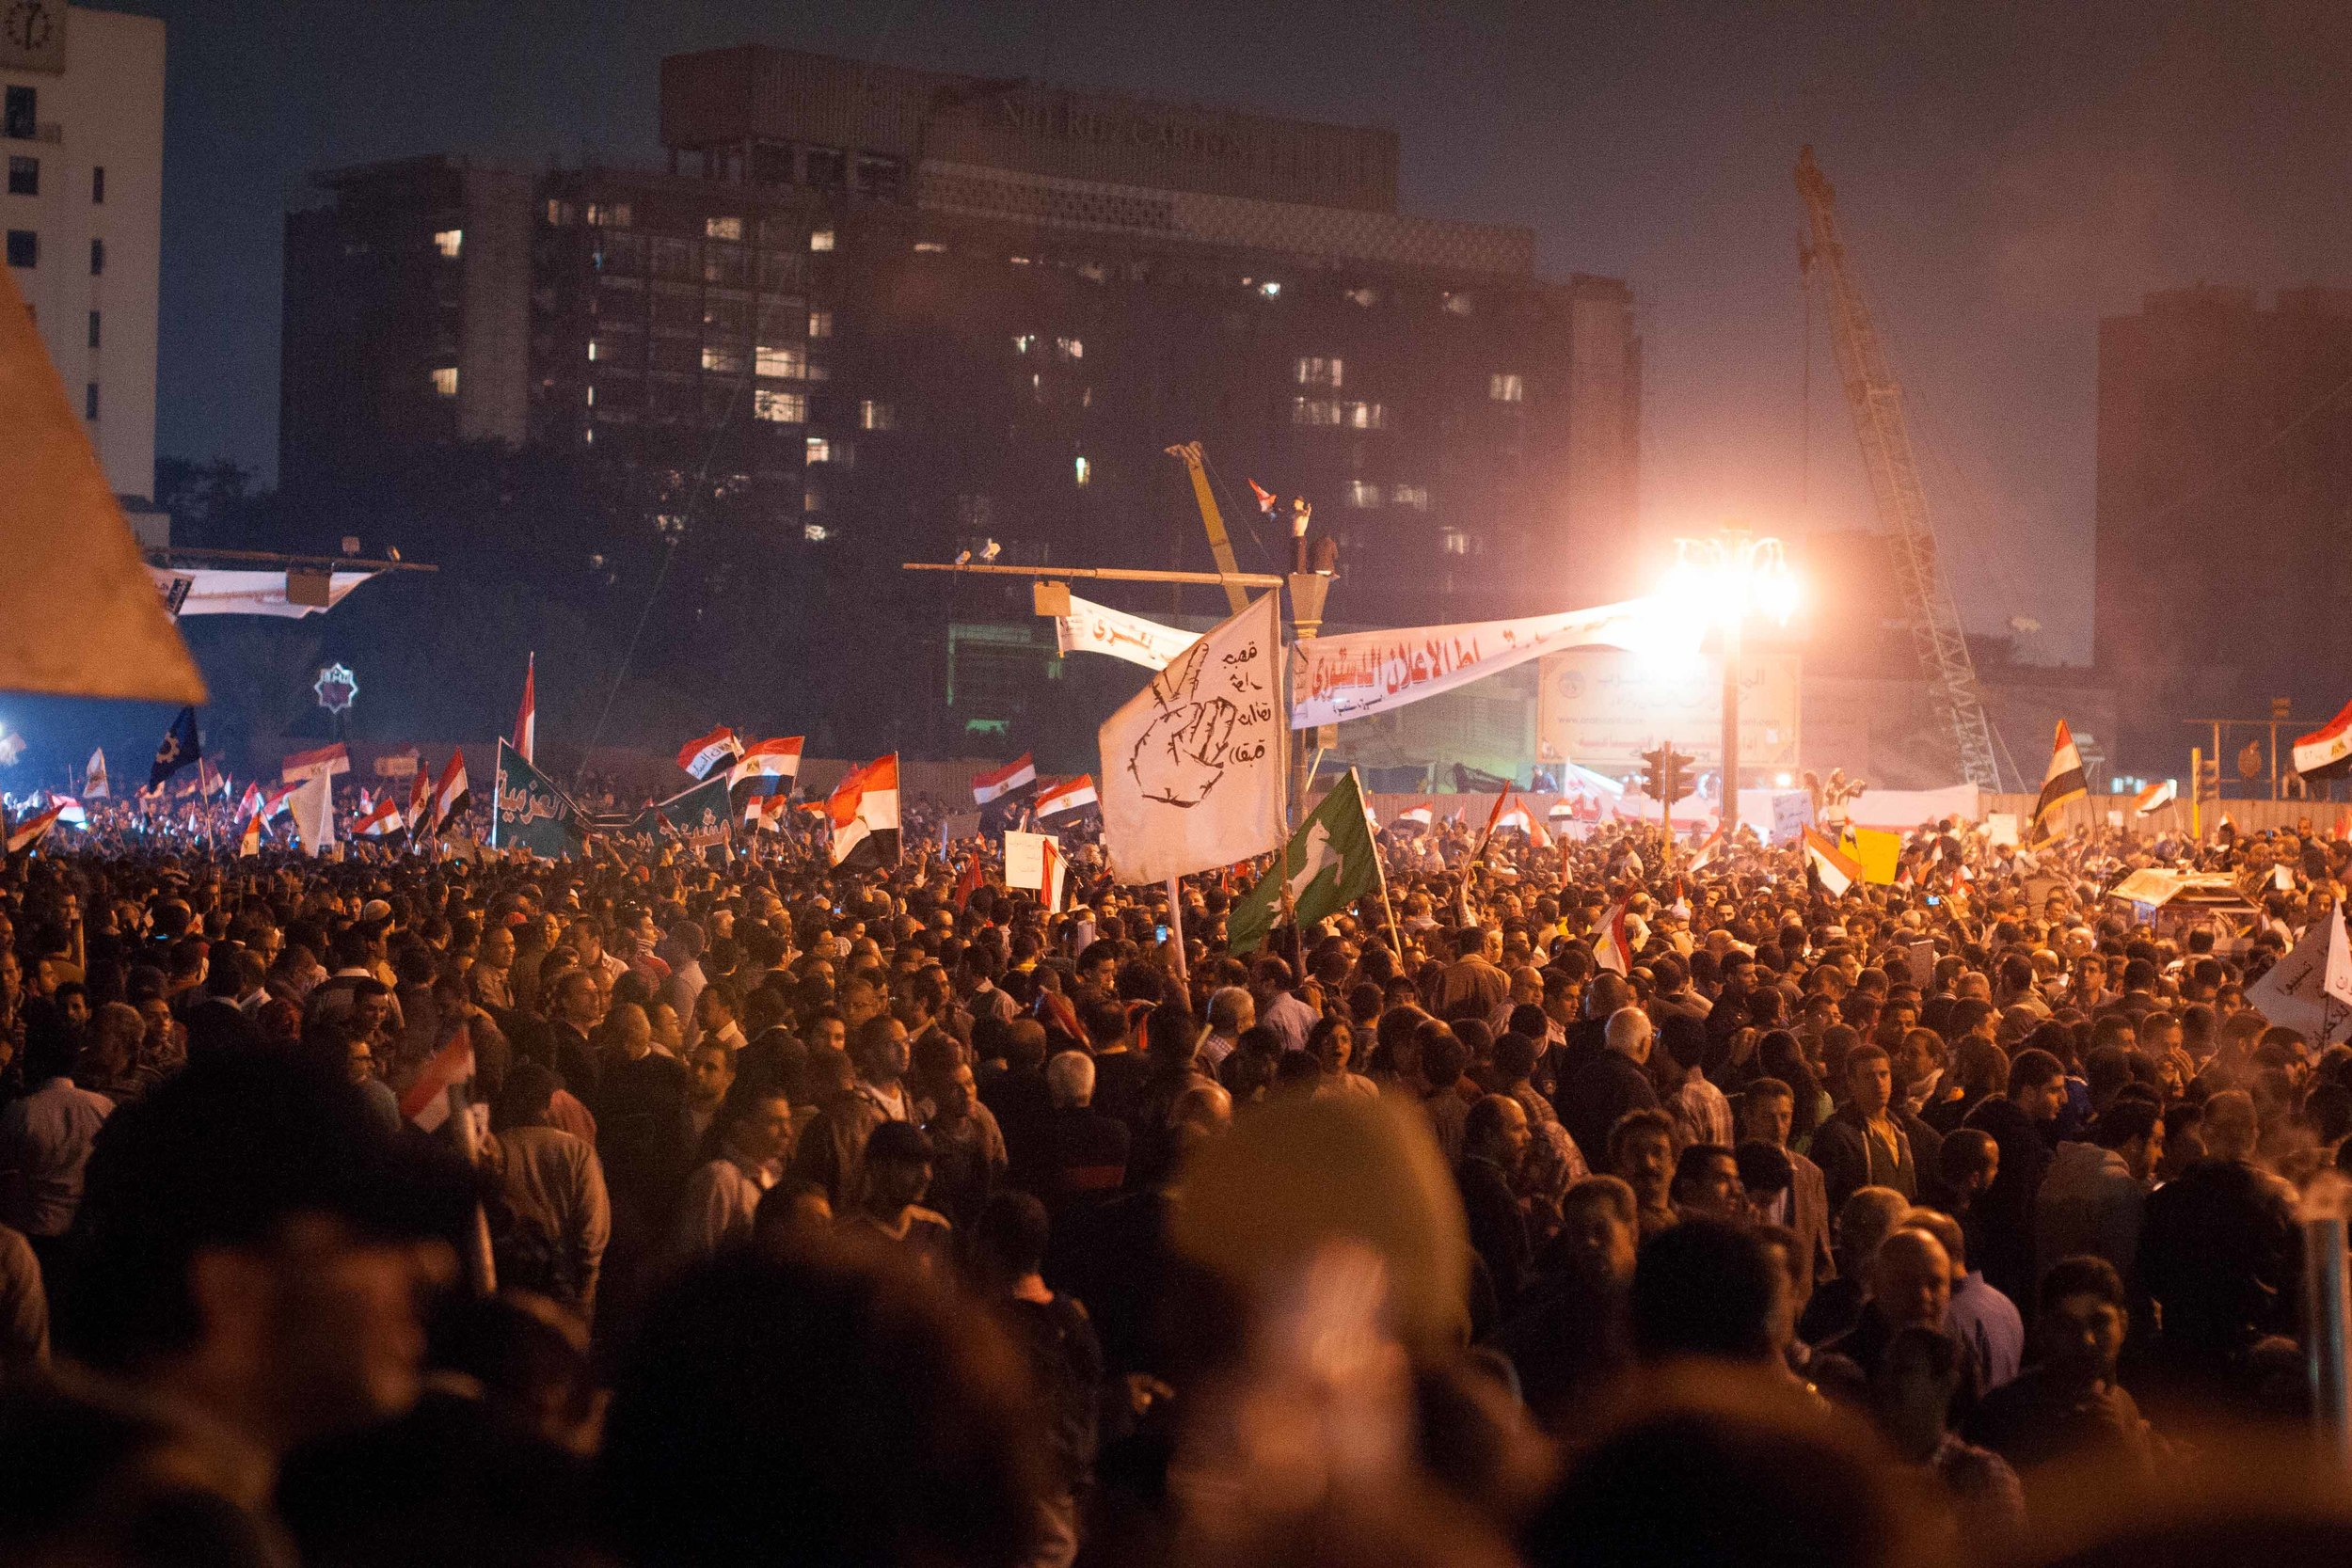 This was around 6 in the evening, before most of the marches even arrived in Tahrir Square.